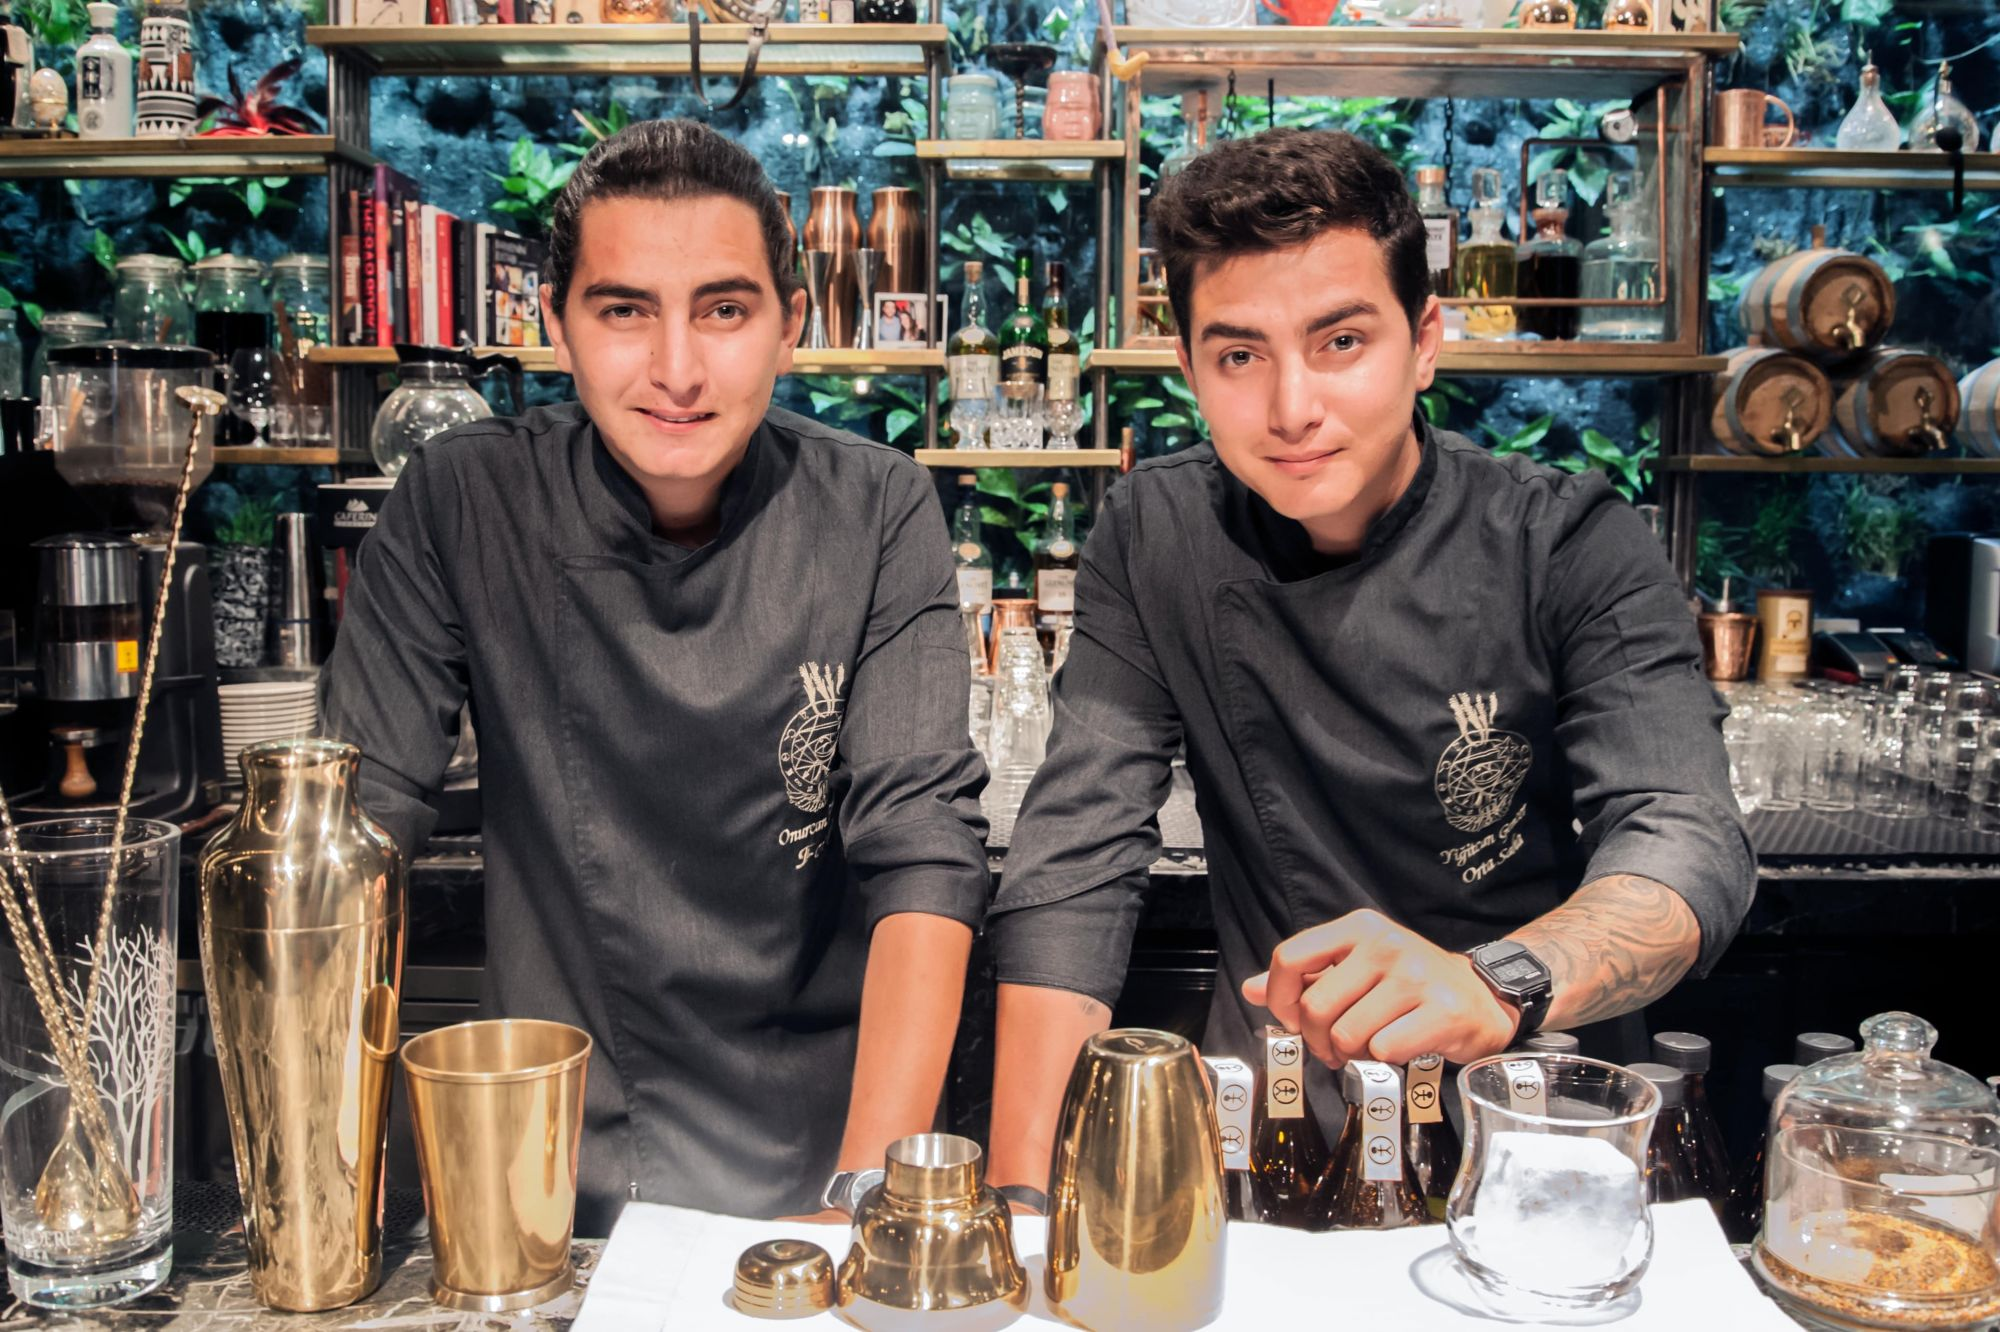 Shangri-La Hotel Hosts Twin Mixologists Straight From Istanbul